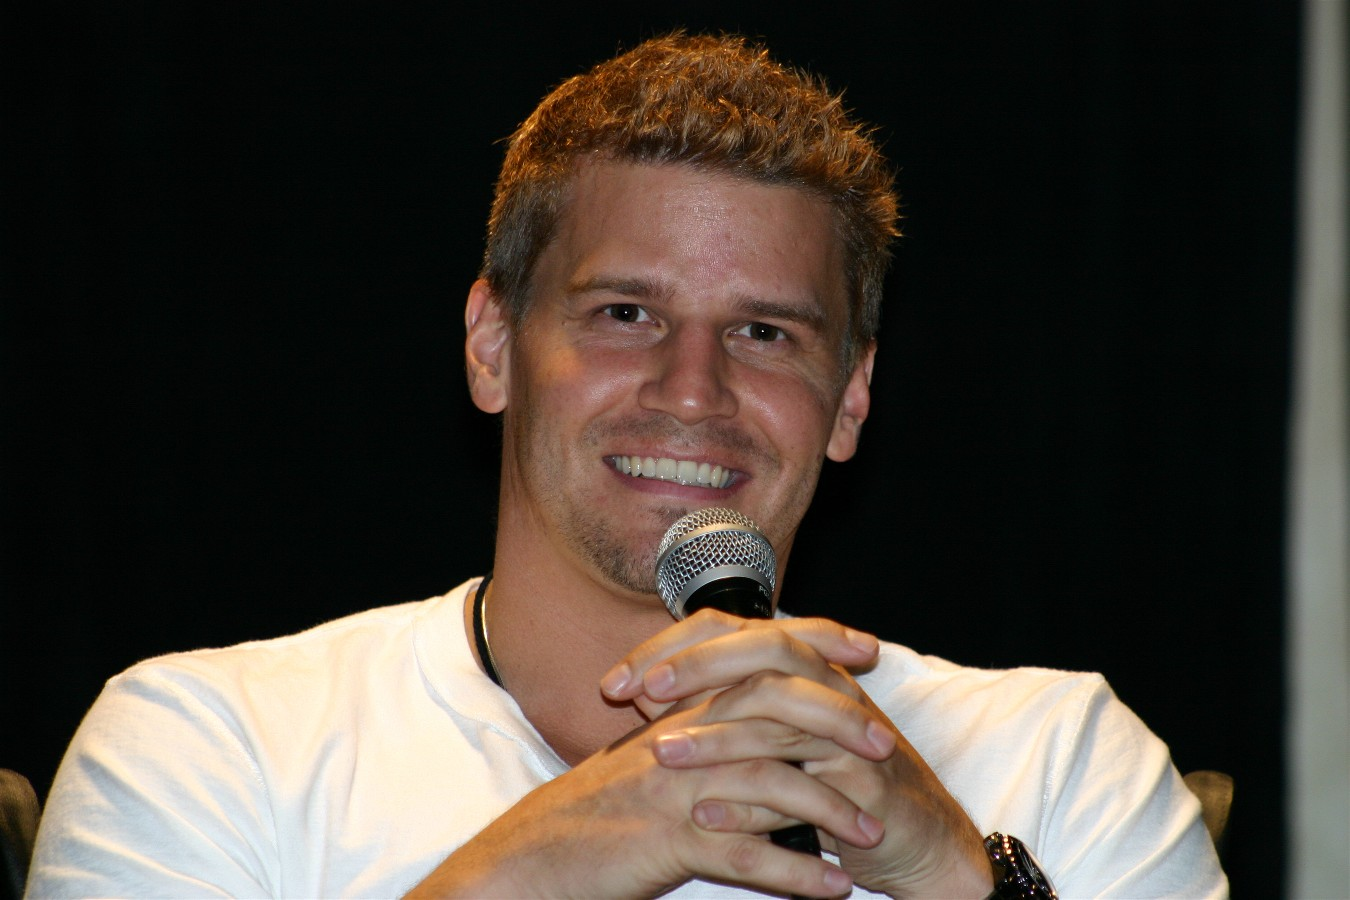 New David Boreanaz HD Wallpaper Wallpaper